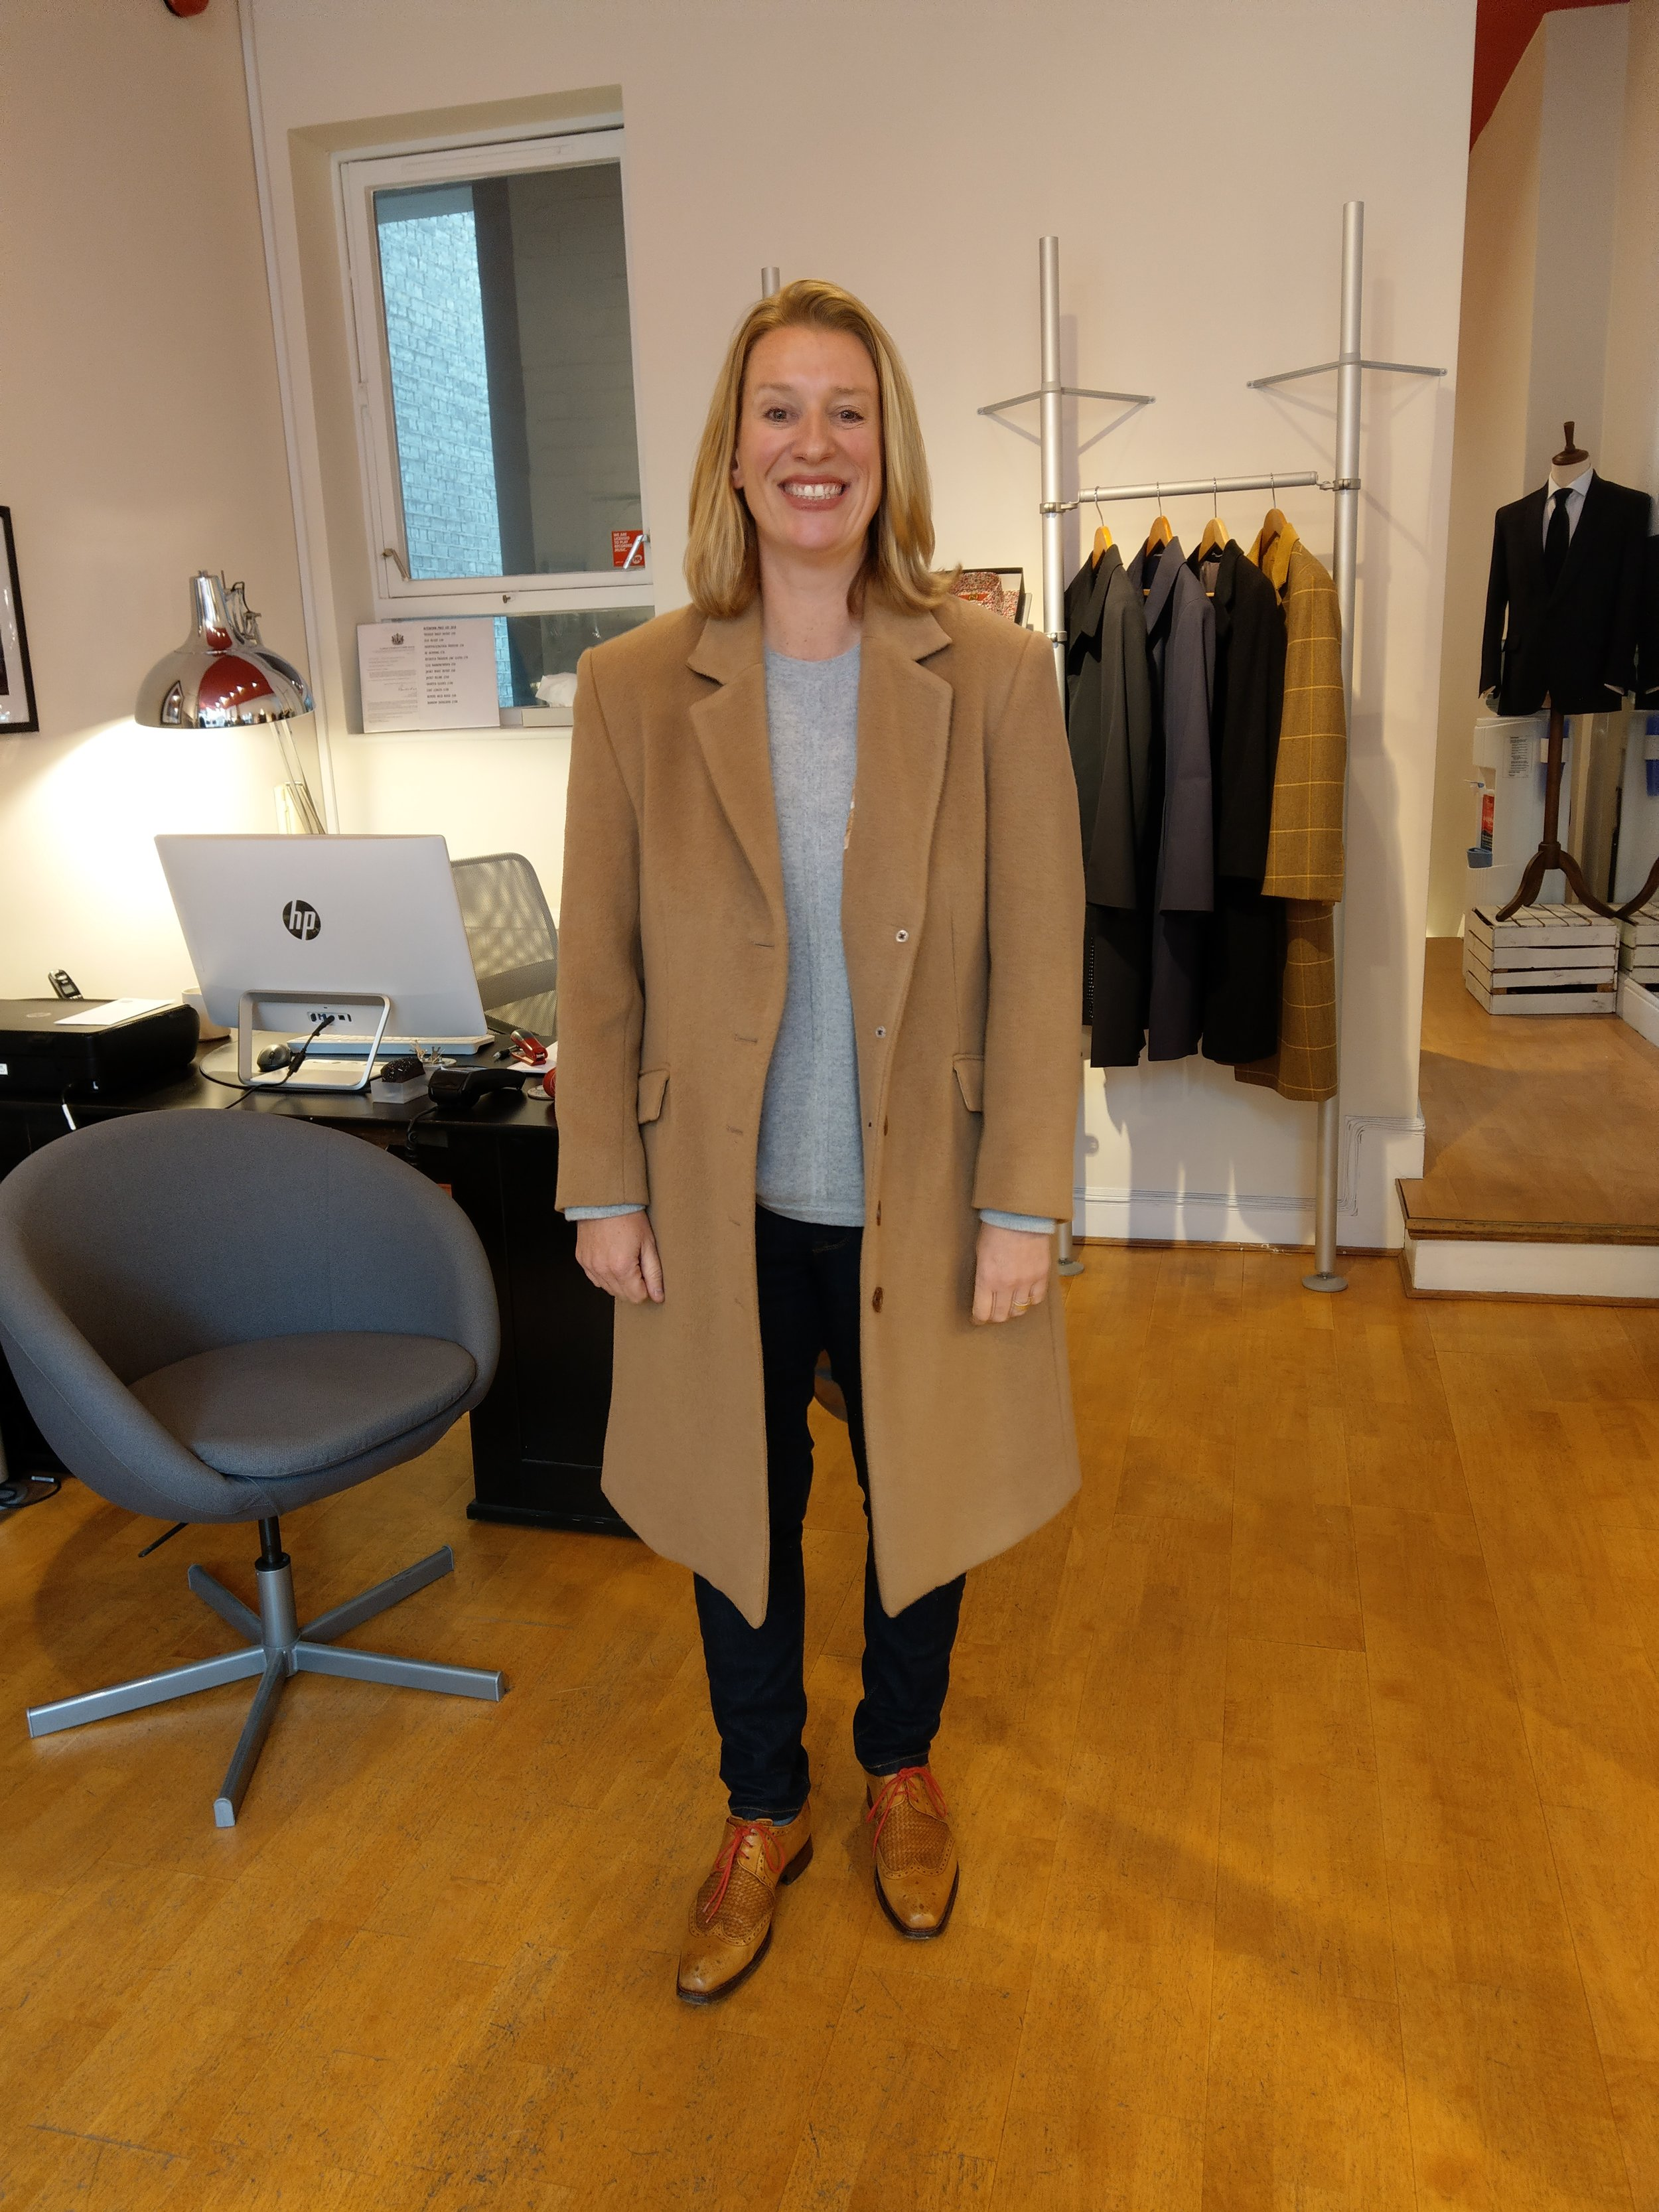 susannah-hall-tailor-coat-overoat-cashmere-camel-design-bespoke-ladies-tailoring-uk-made-britain.jpg